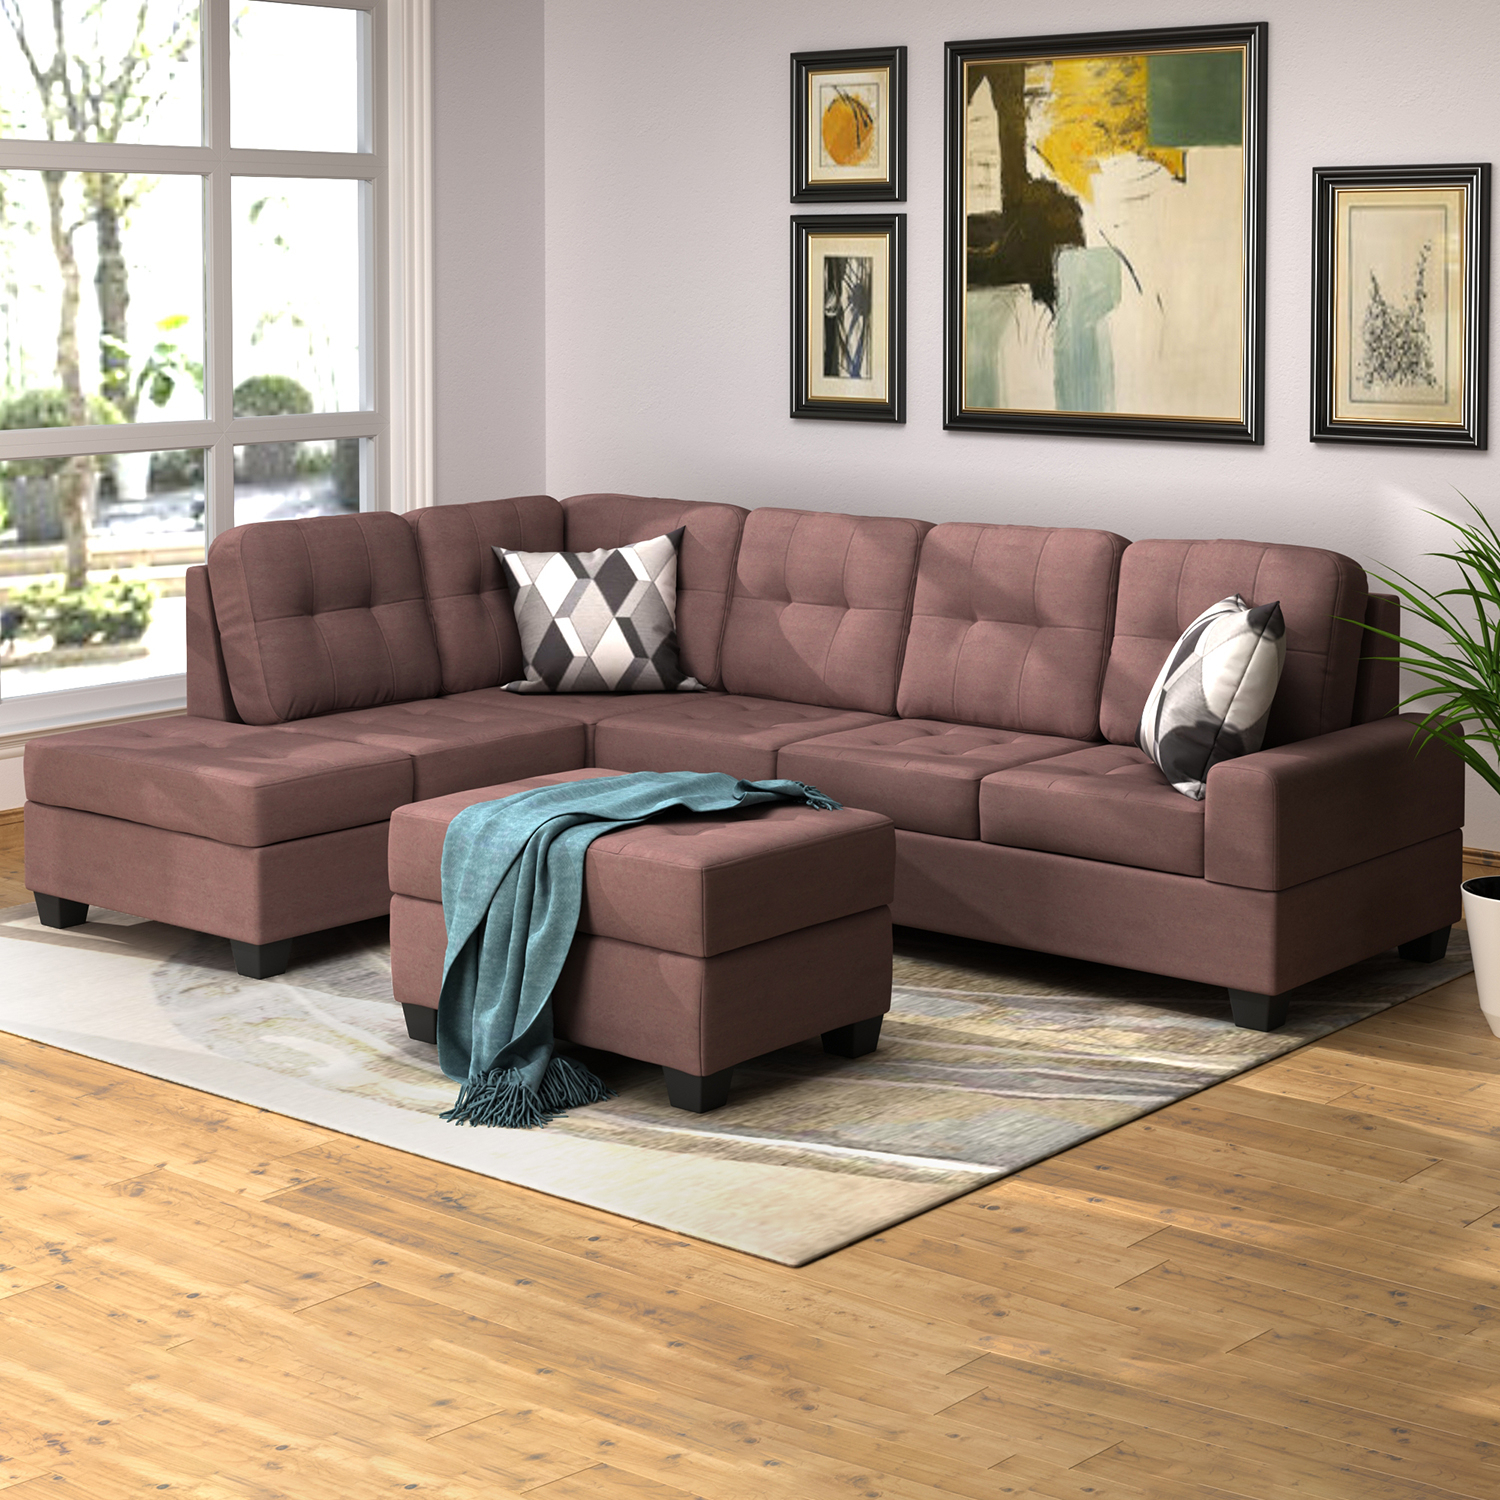 3 Piece Sectional Sofa Microfiber With Reversible Chaise With Regard To Copenhagen Reversible Small Space Sectional Sofas With Storage (View 4 of 15)